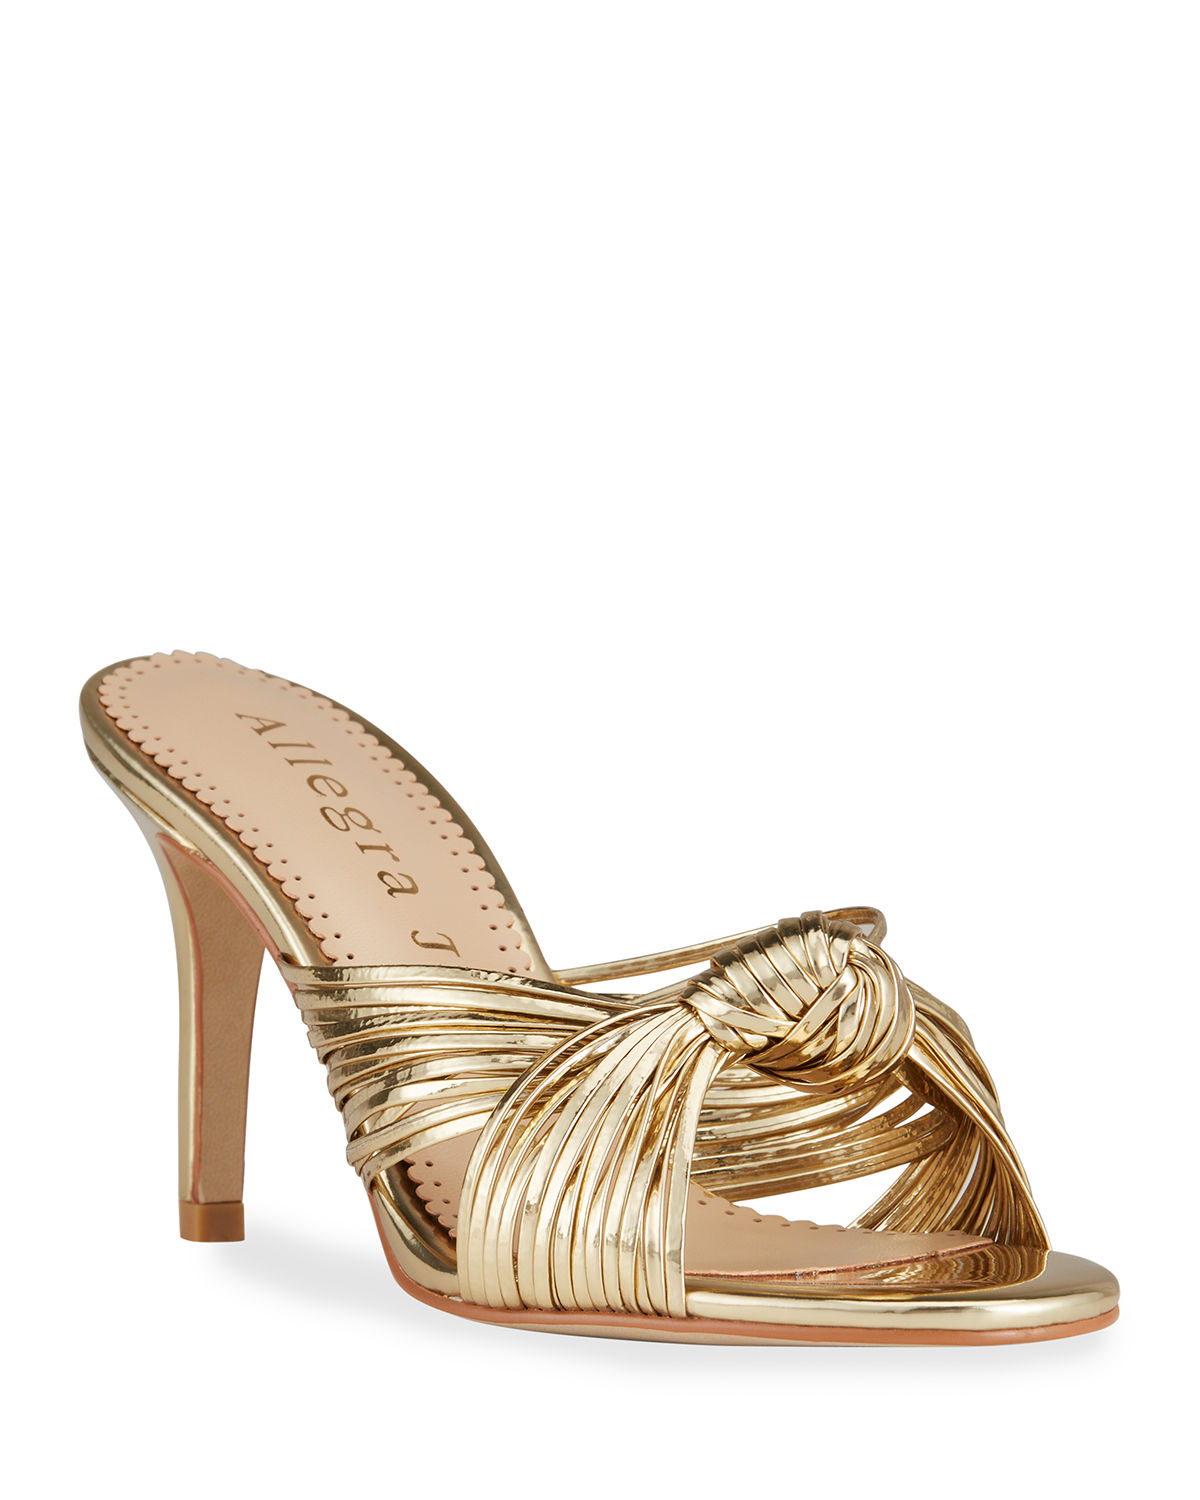 Marly Metallic Knot Mule Sandals